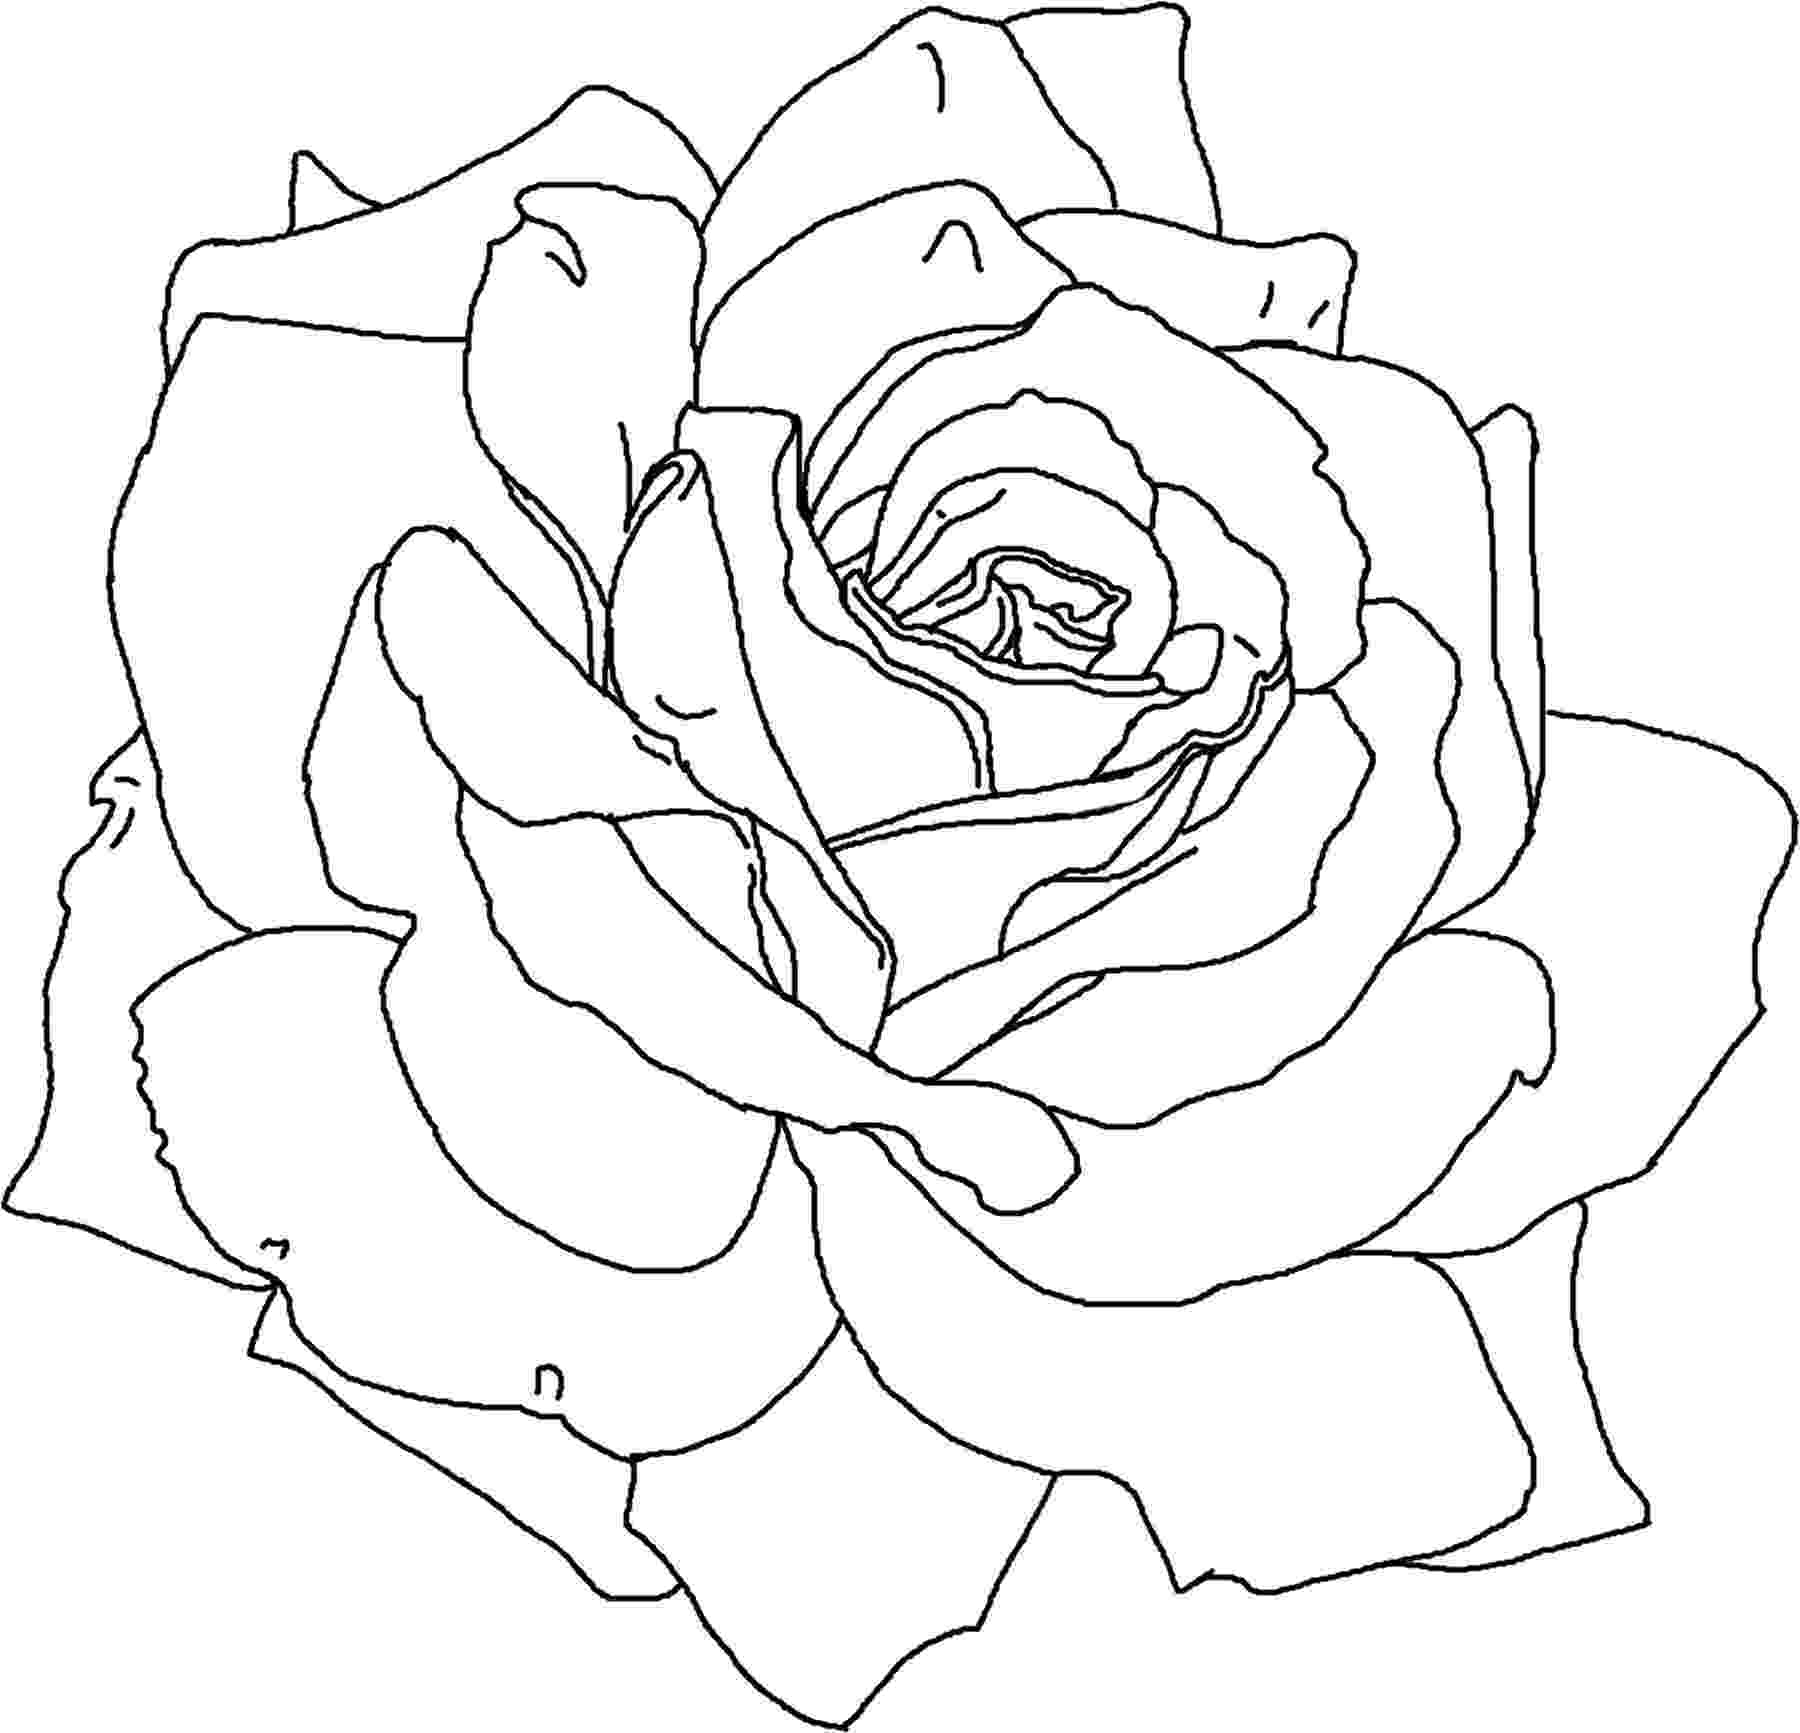 pictures of flowers to print and color flower garden coloring pages to download and print for free color and pictures flowers print to of